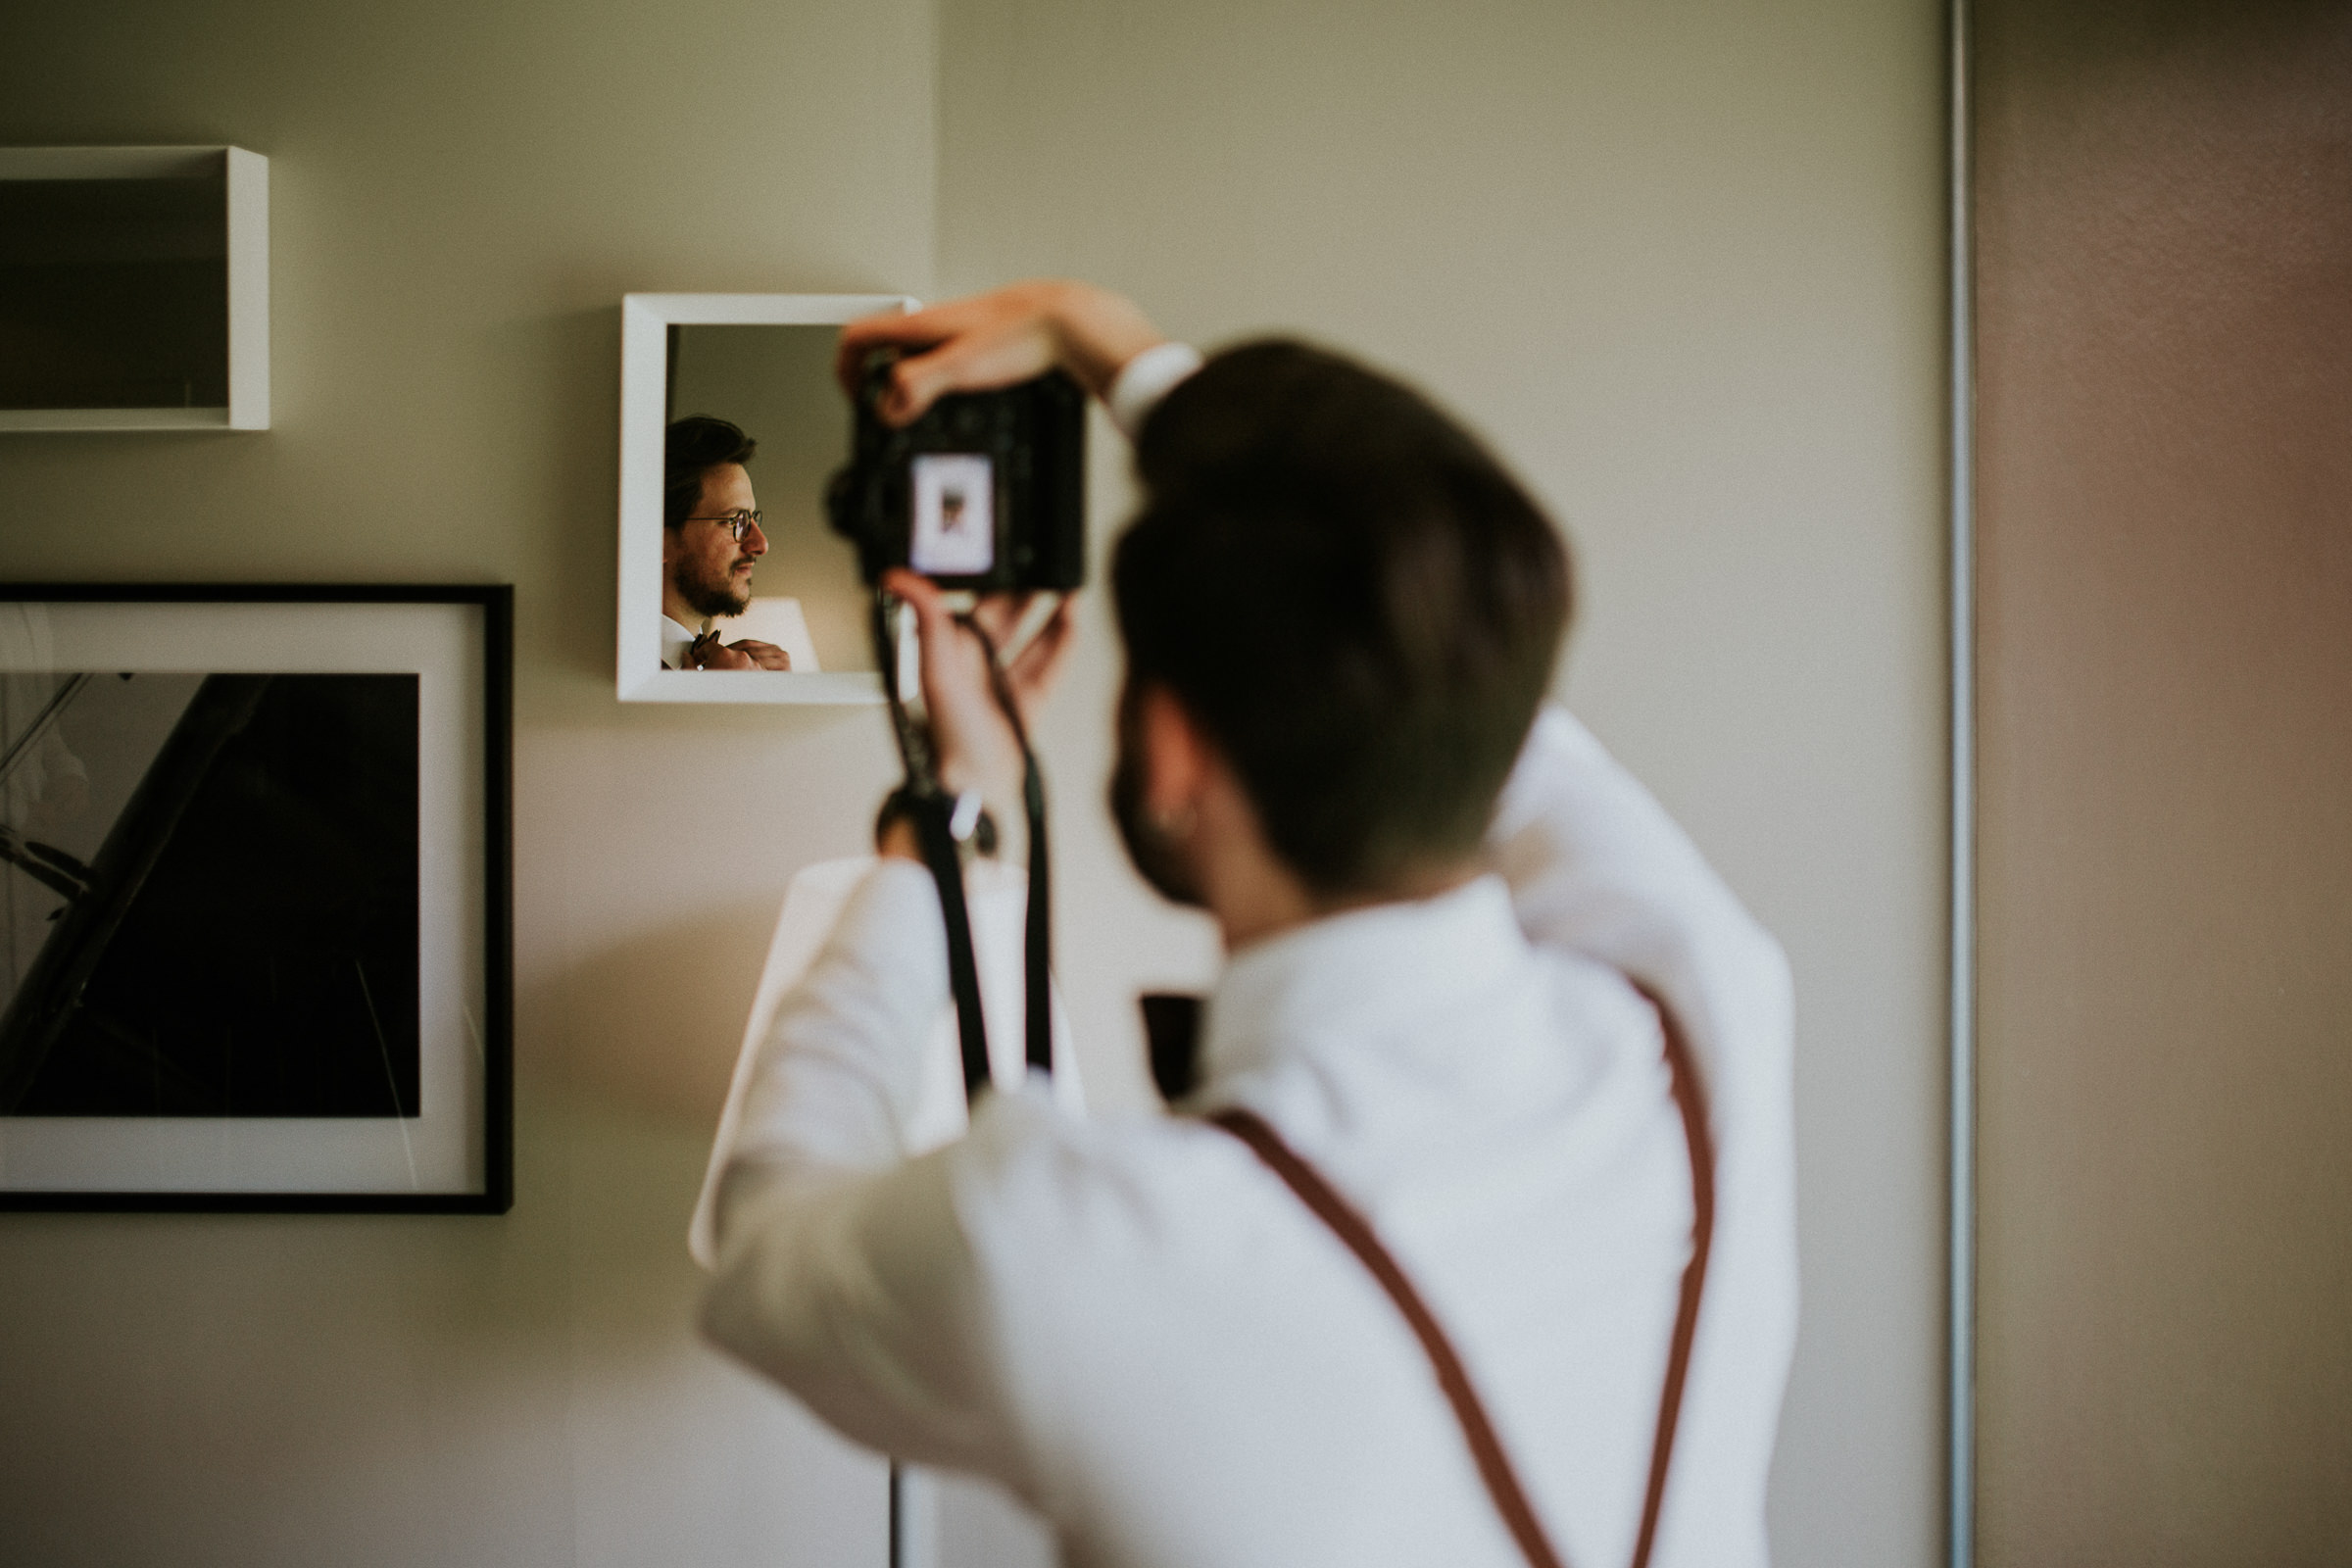 wedding guest taking a photo of a groom on the mirror reflection